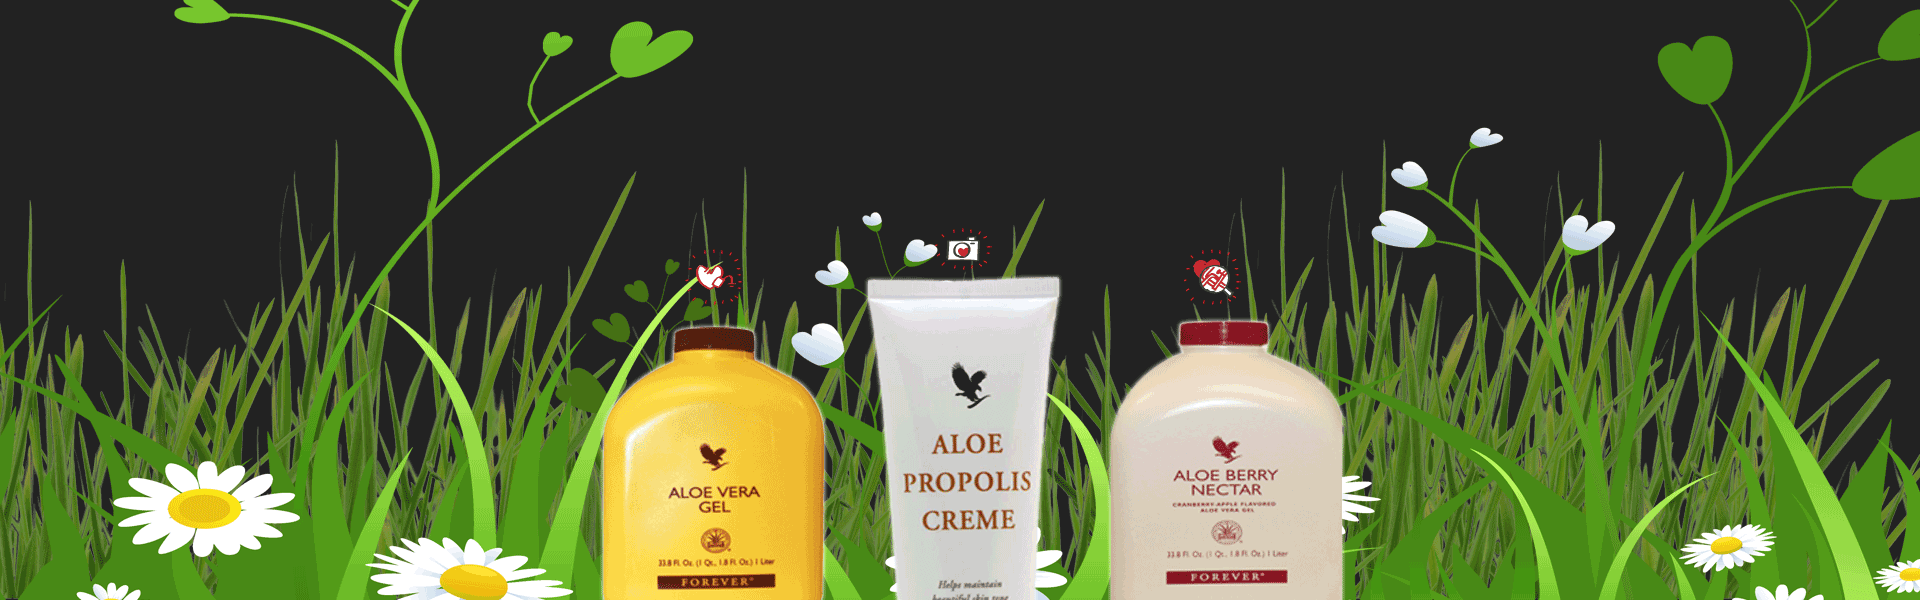 Aloe Vera products from Aloe-Herbal.co.uk